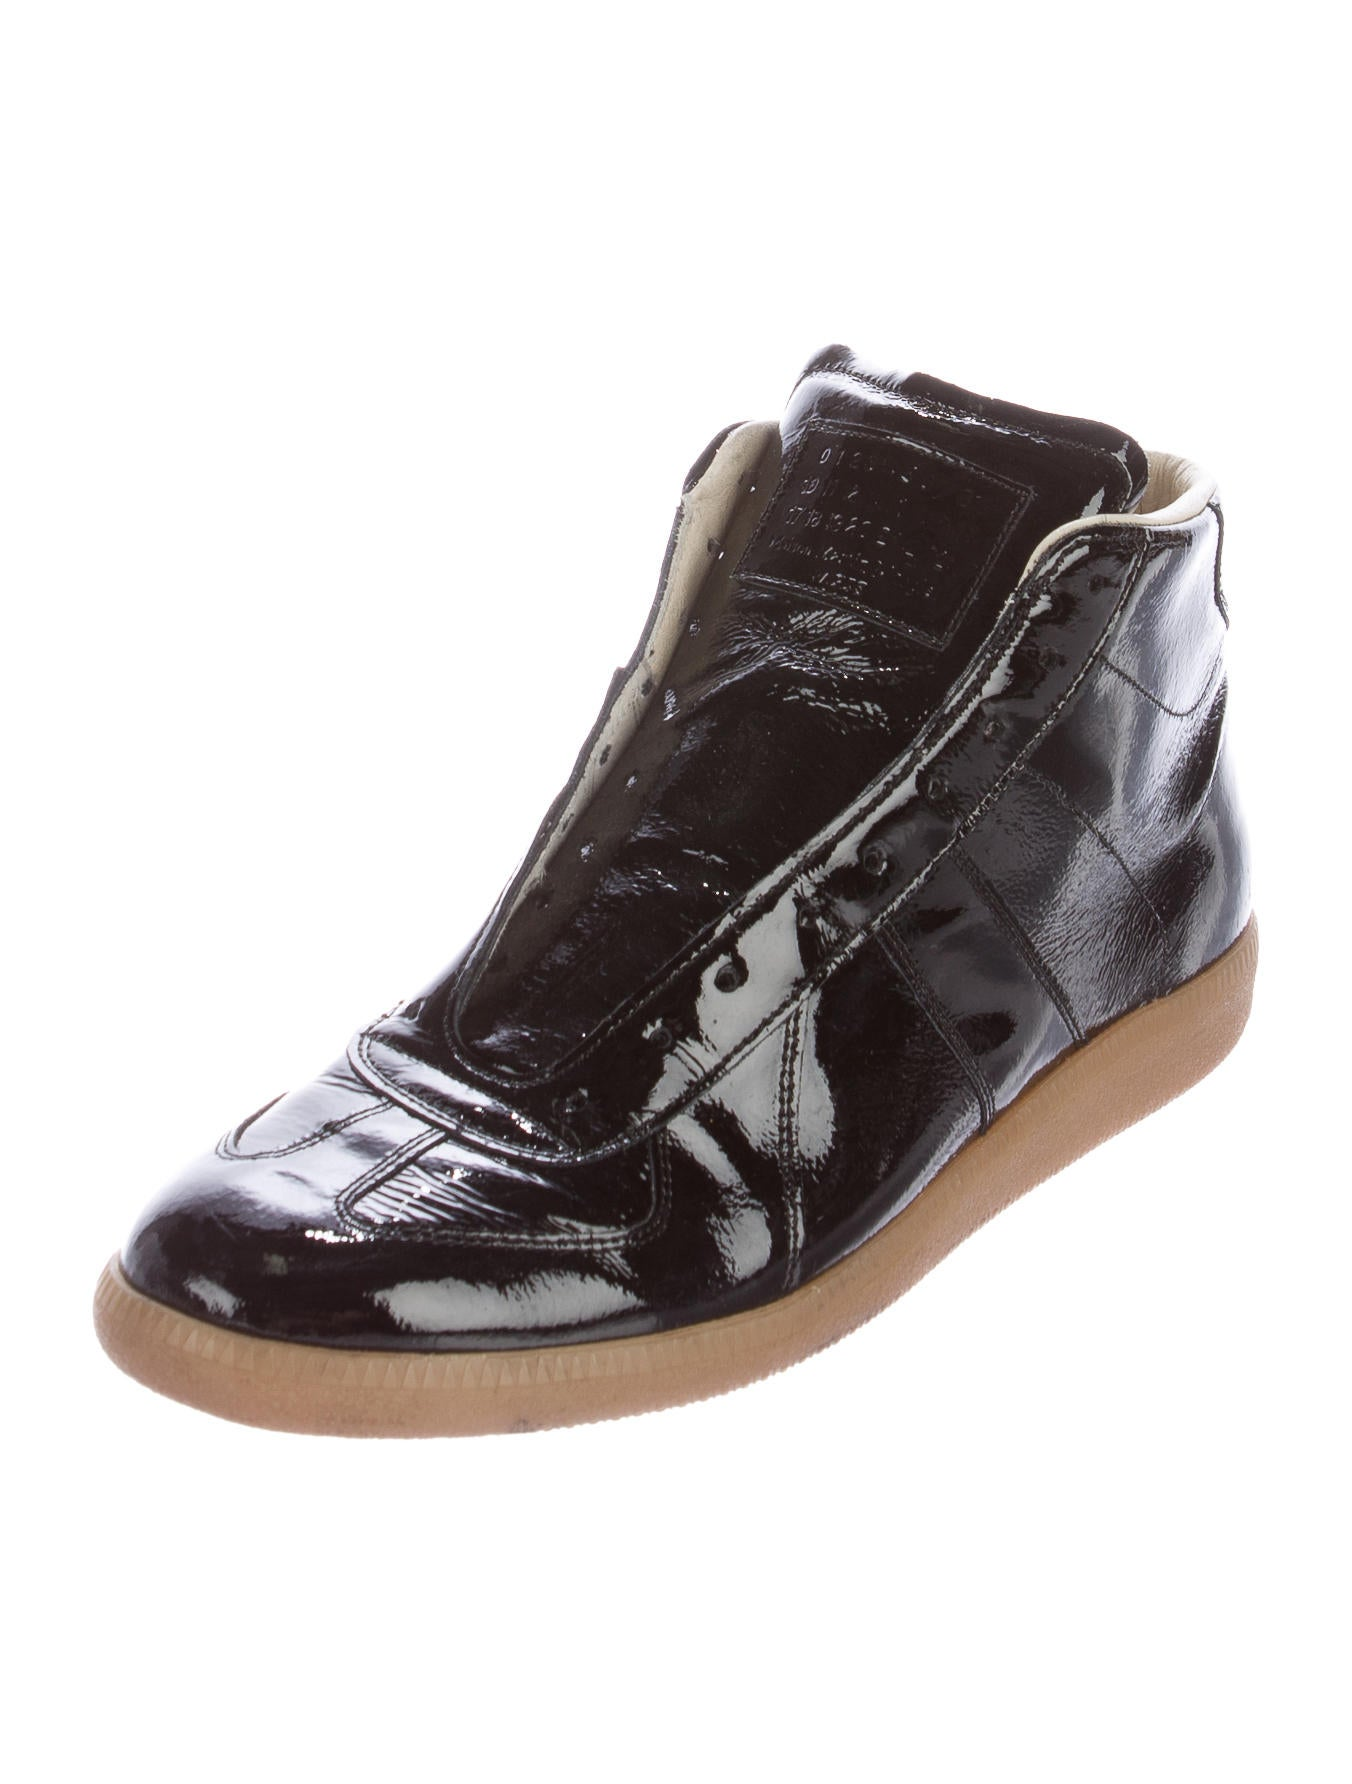 maison margiela patent leather sneakers shoes mai29955 the realreal. Black Bedroom Furniture Sets. Home Design Ideas